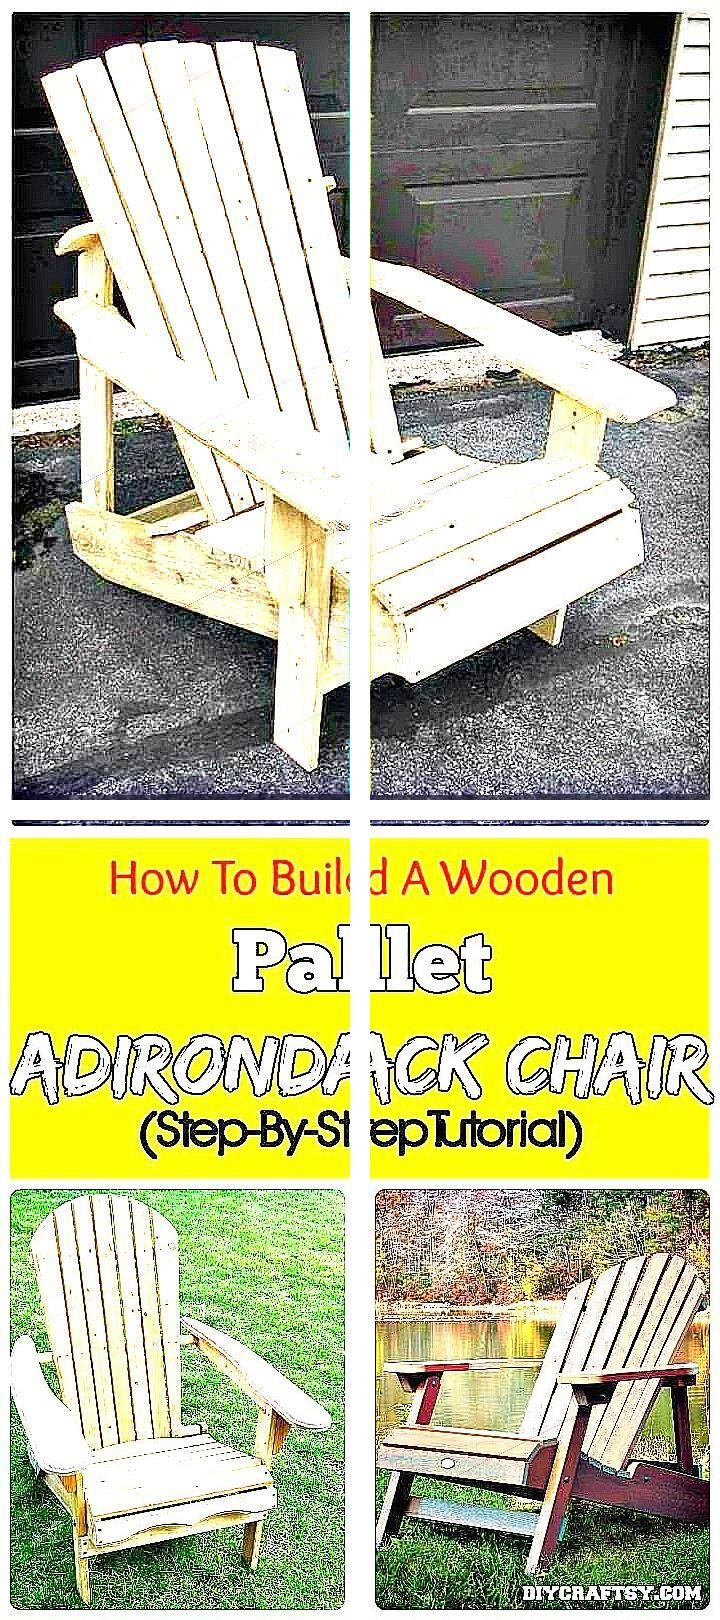 Woodworking Project Plans | Do It Yourself Concrete | Homemade Home Furnishings